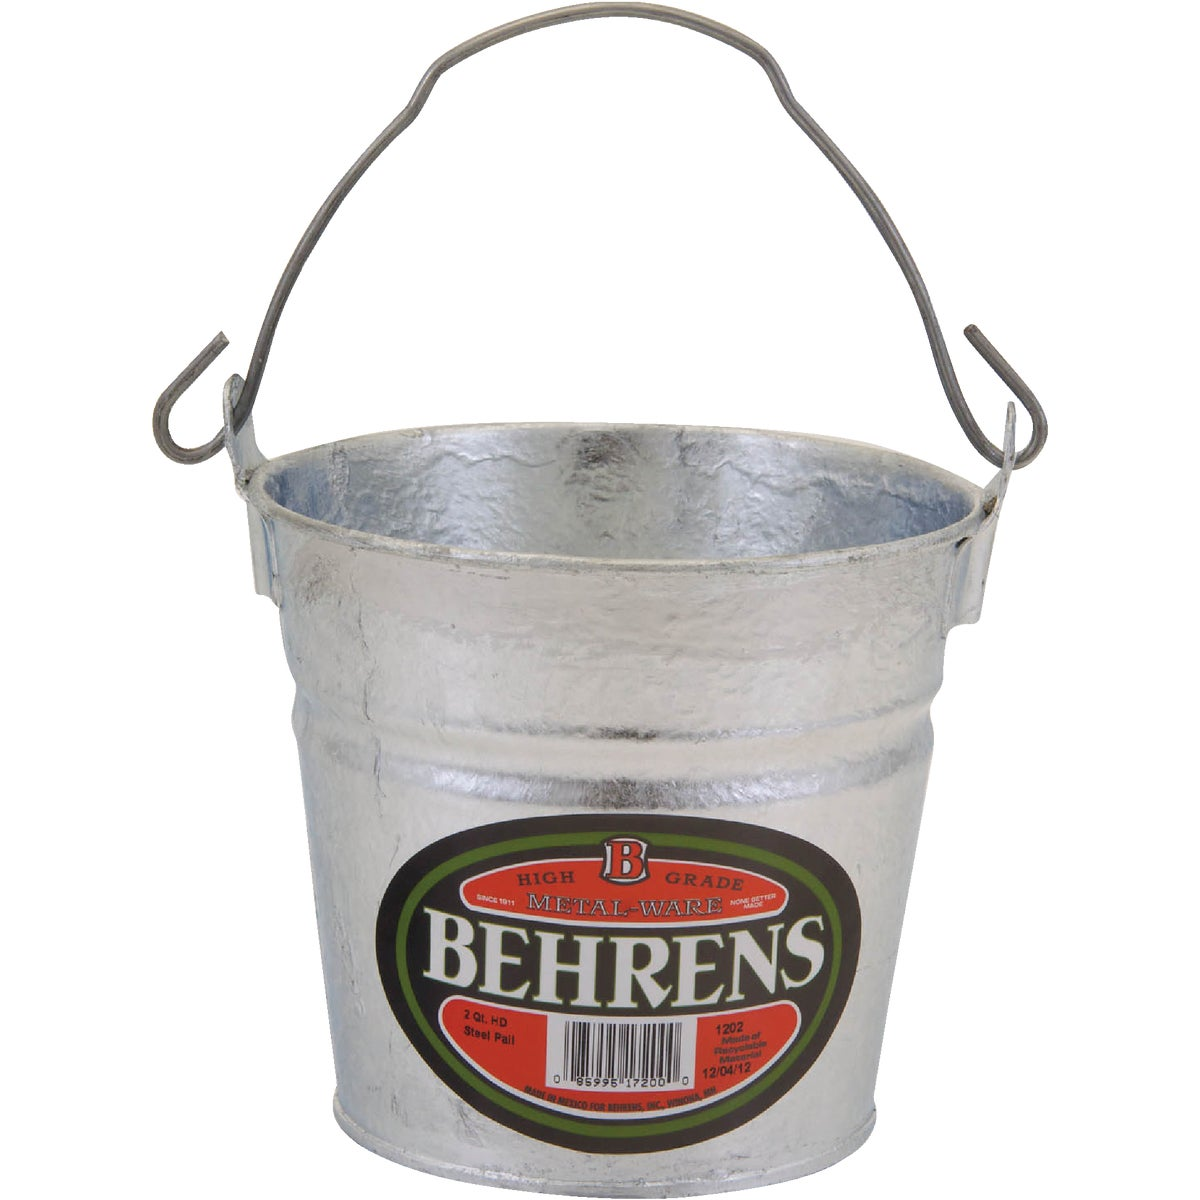 2QT HOT DIPPED PAIL - 1202 by Behrens Mfg